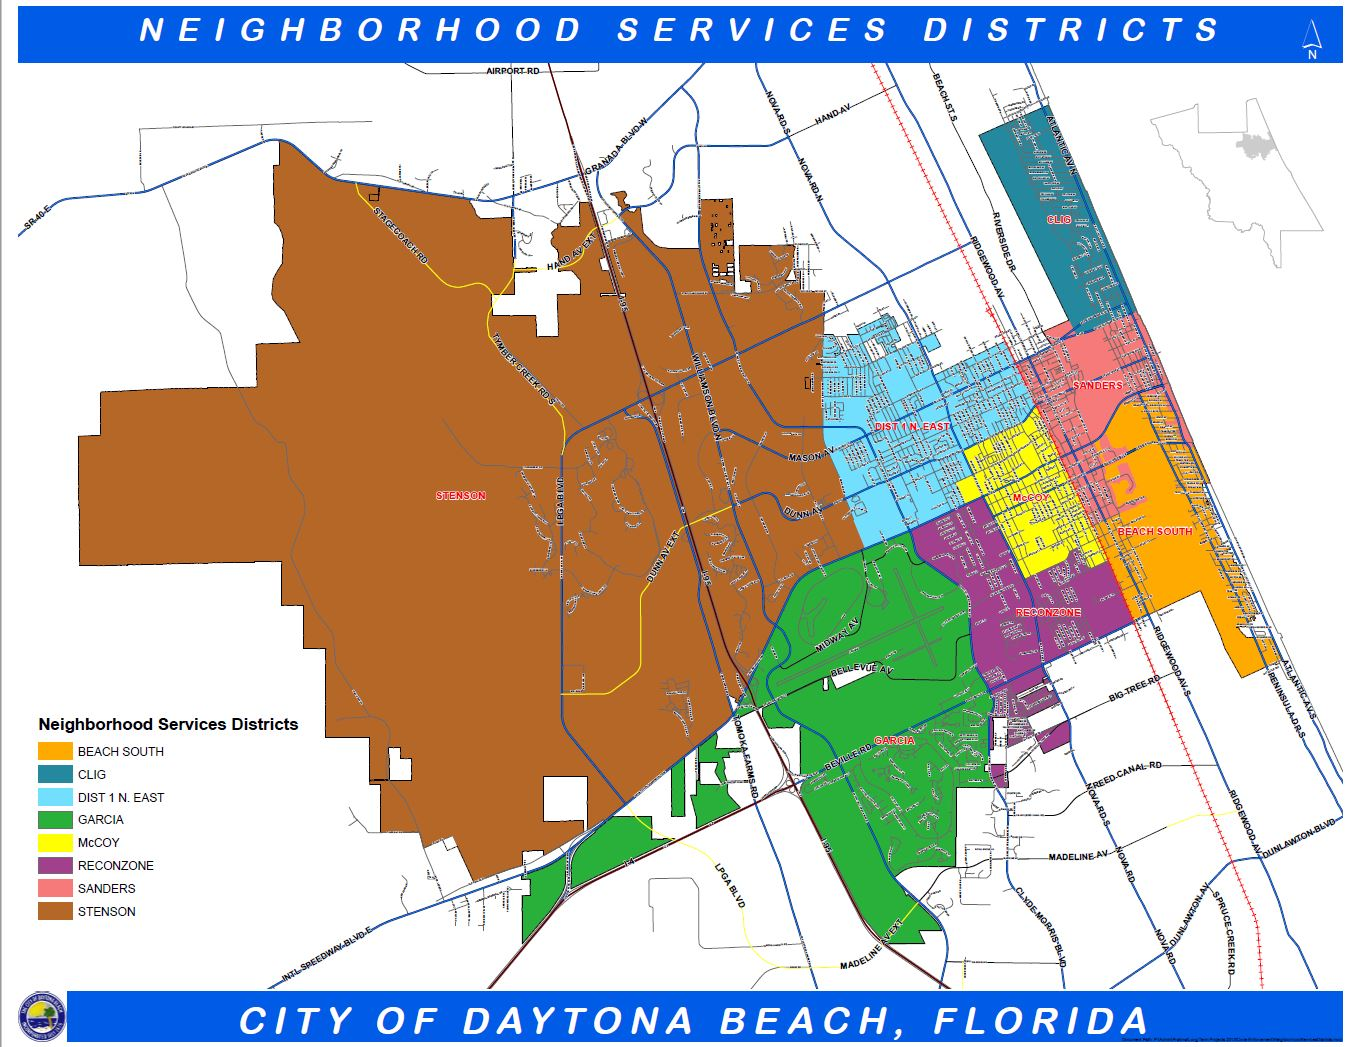 NeighborhoodServicesDistricts_rv060117.jpg